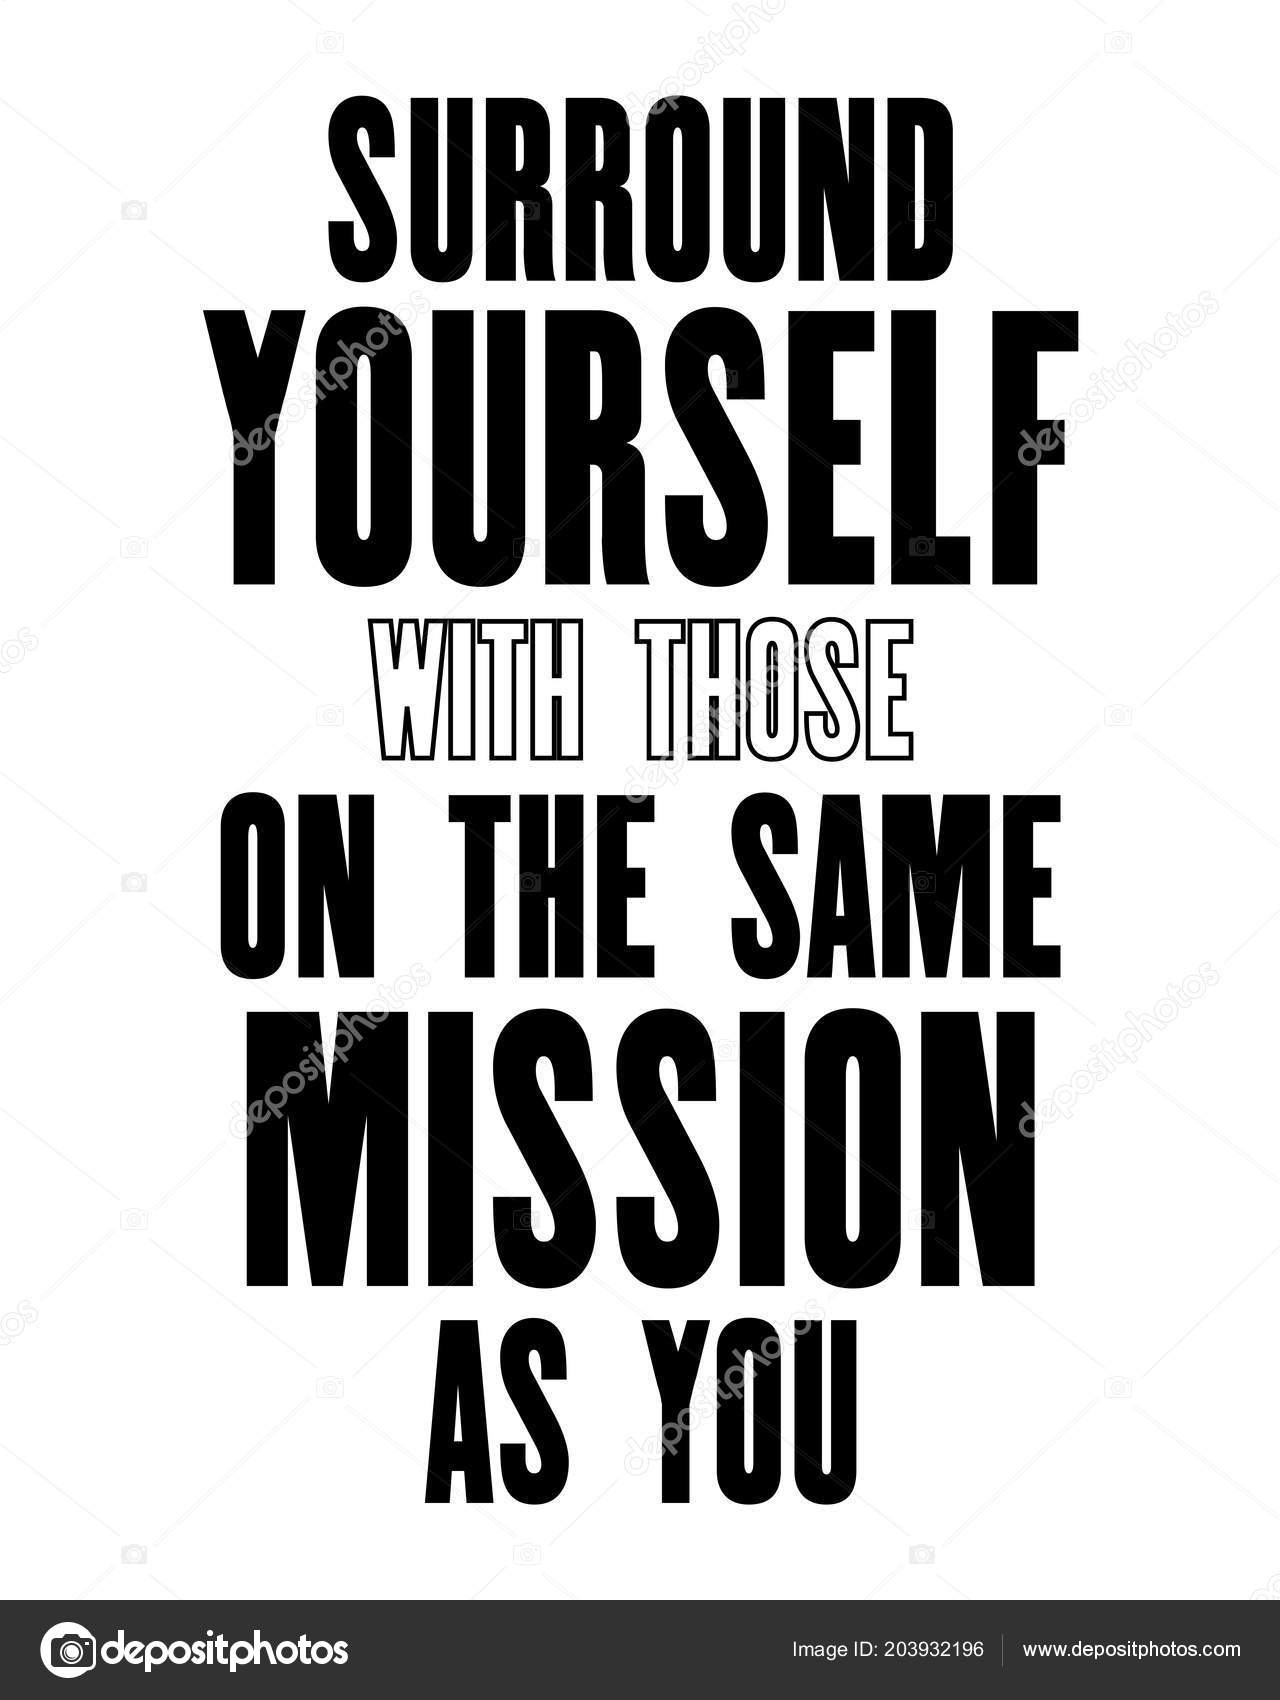 Inspiring Motivation Quote Text Surround Yourself Those Same Mission